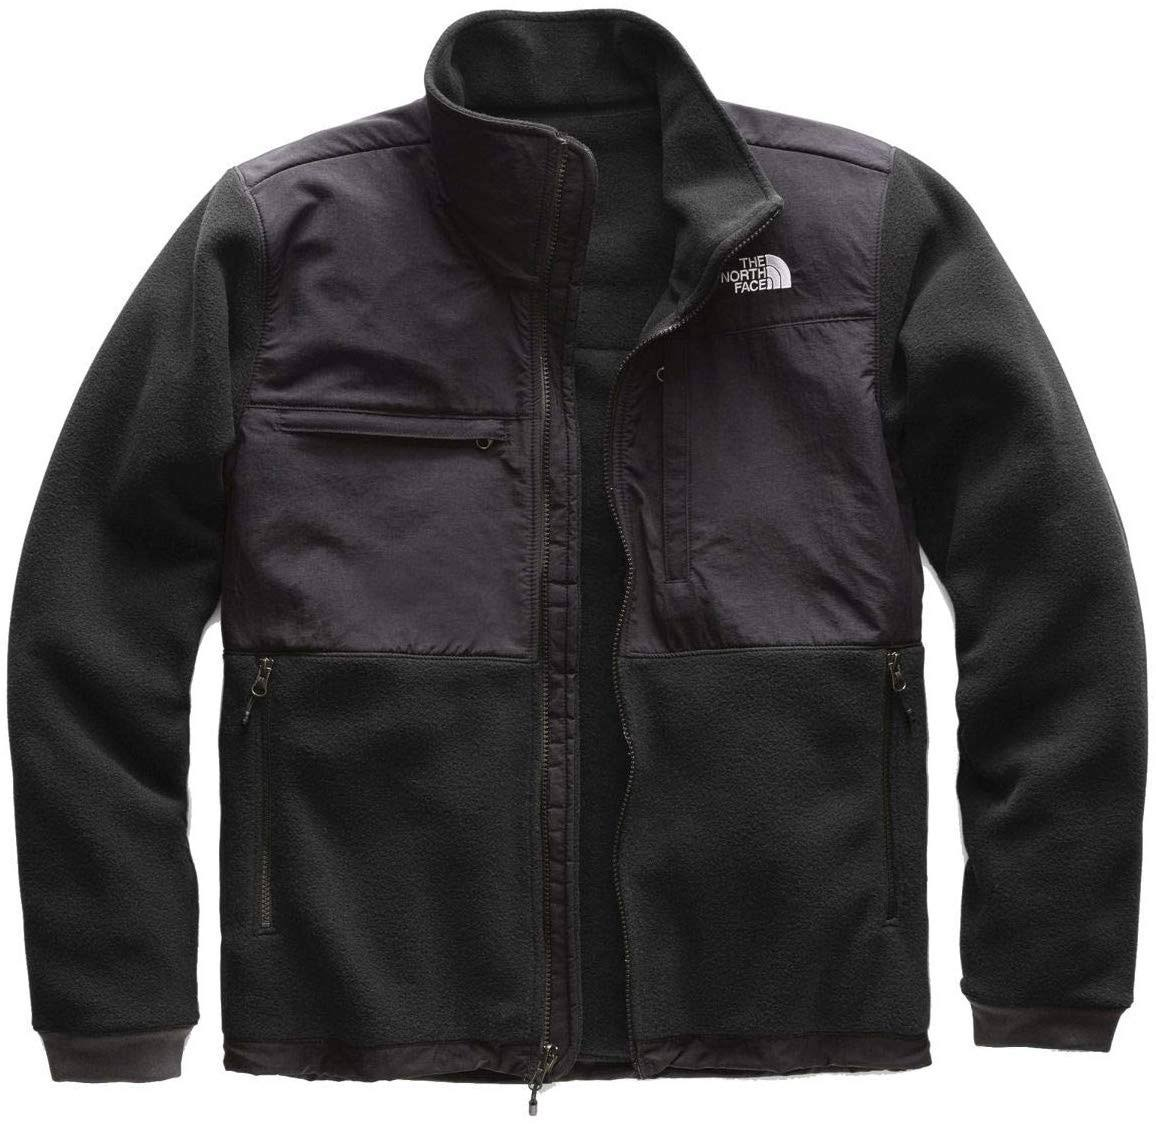 The North Face Denali 2 Jacket - Men's Recycled TNF Black / L